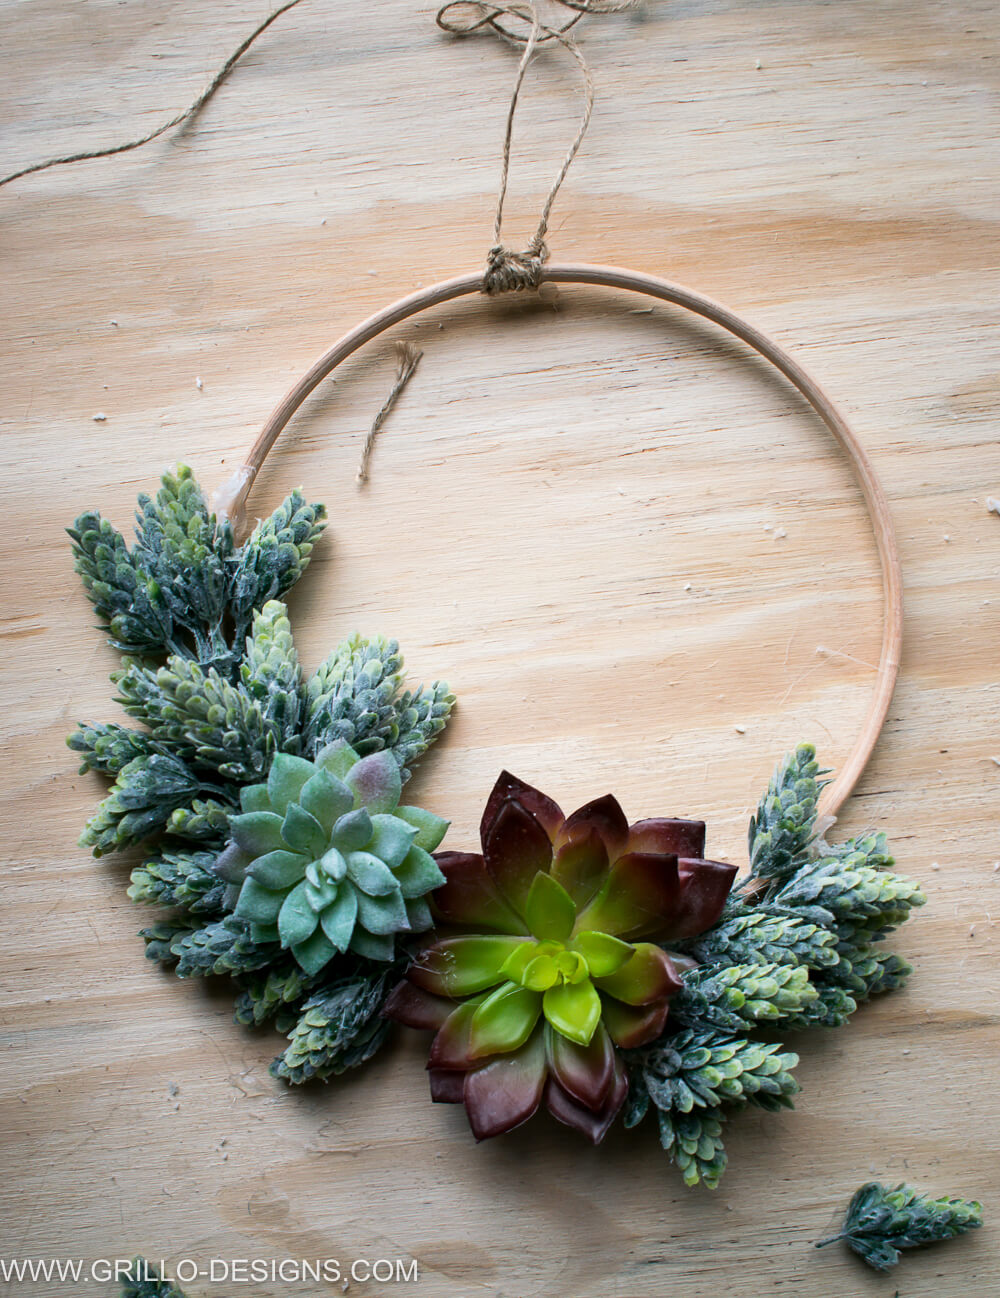 Picture showing the jute string in place on the succulent wreath